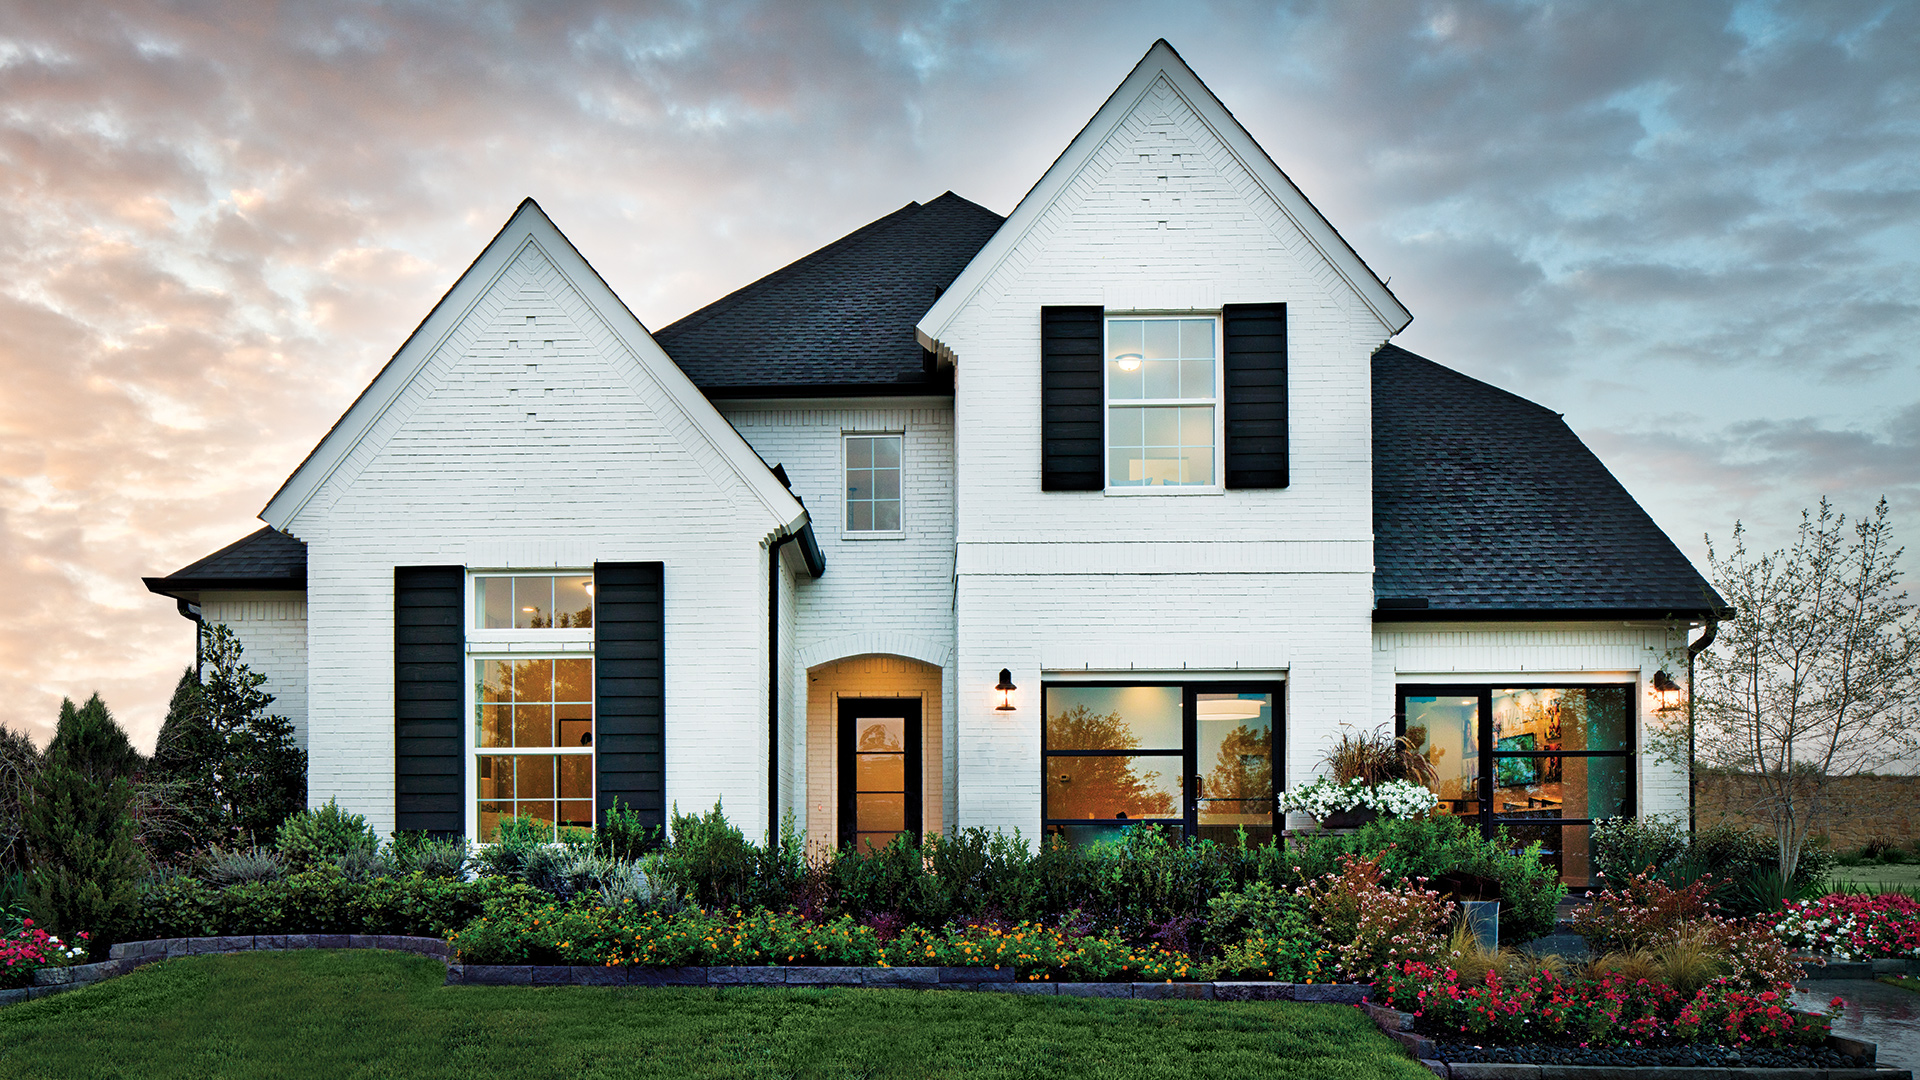 The Longview Classic, one of many luxurious home designs which will be available soon in Frisco Springs.